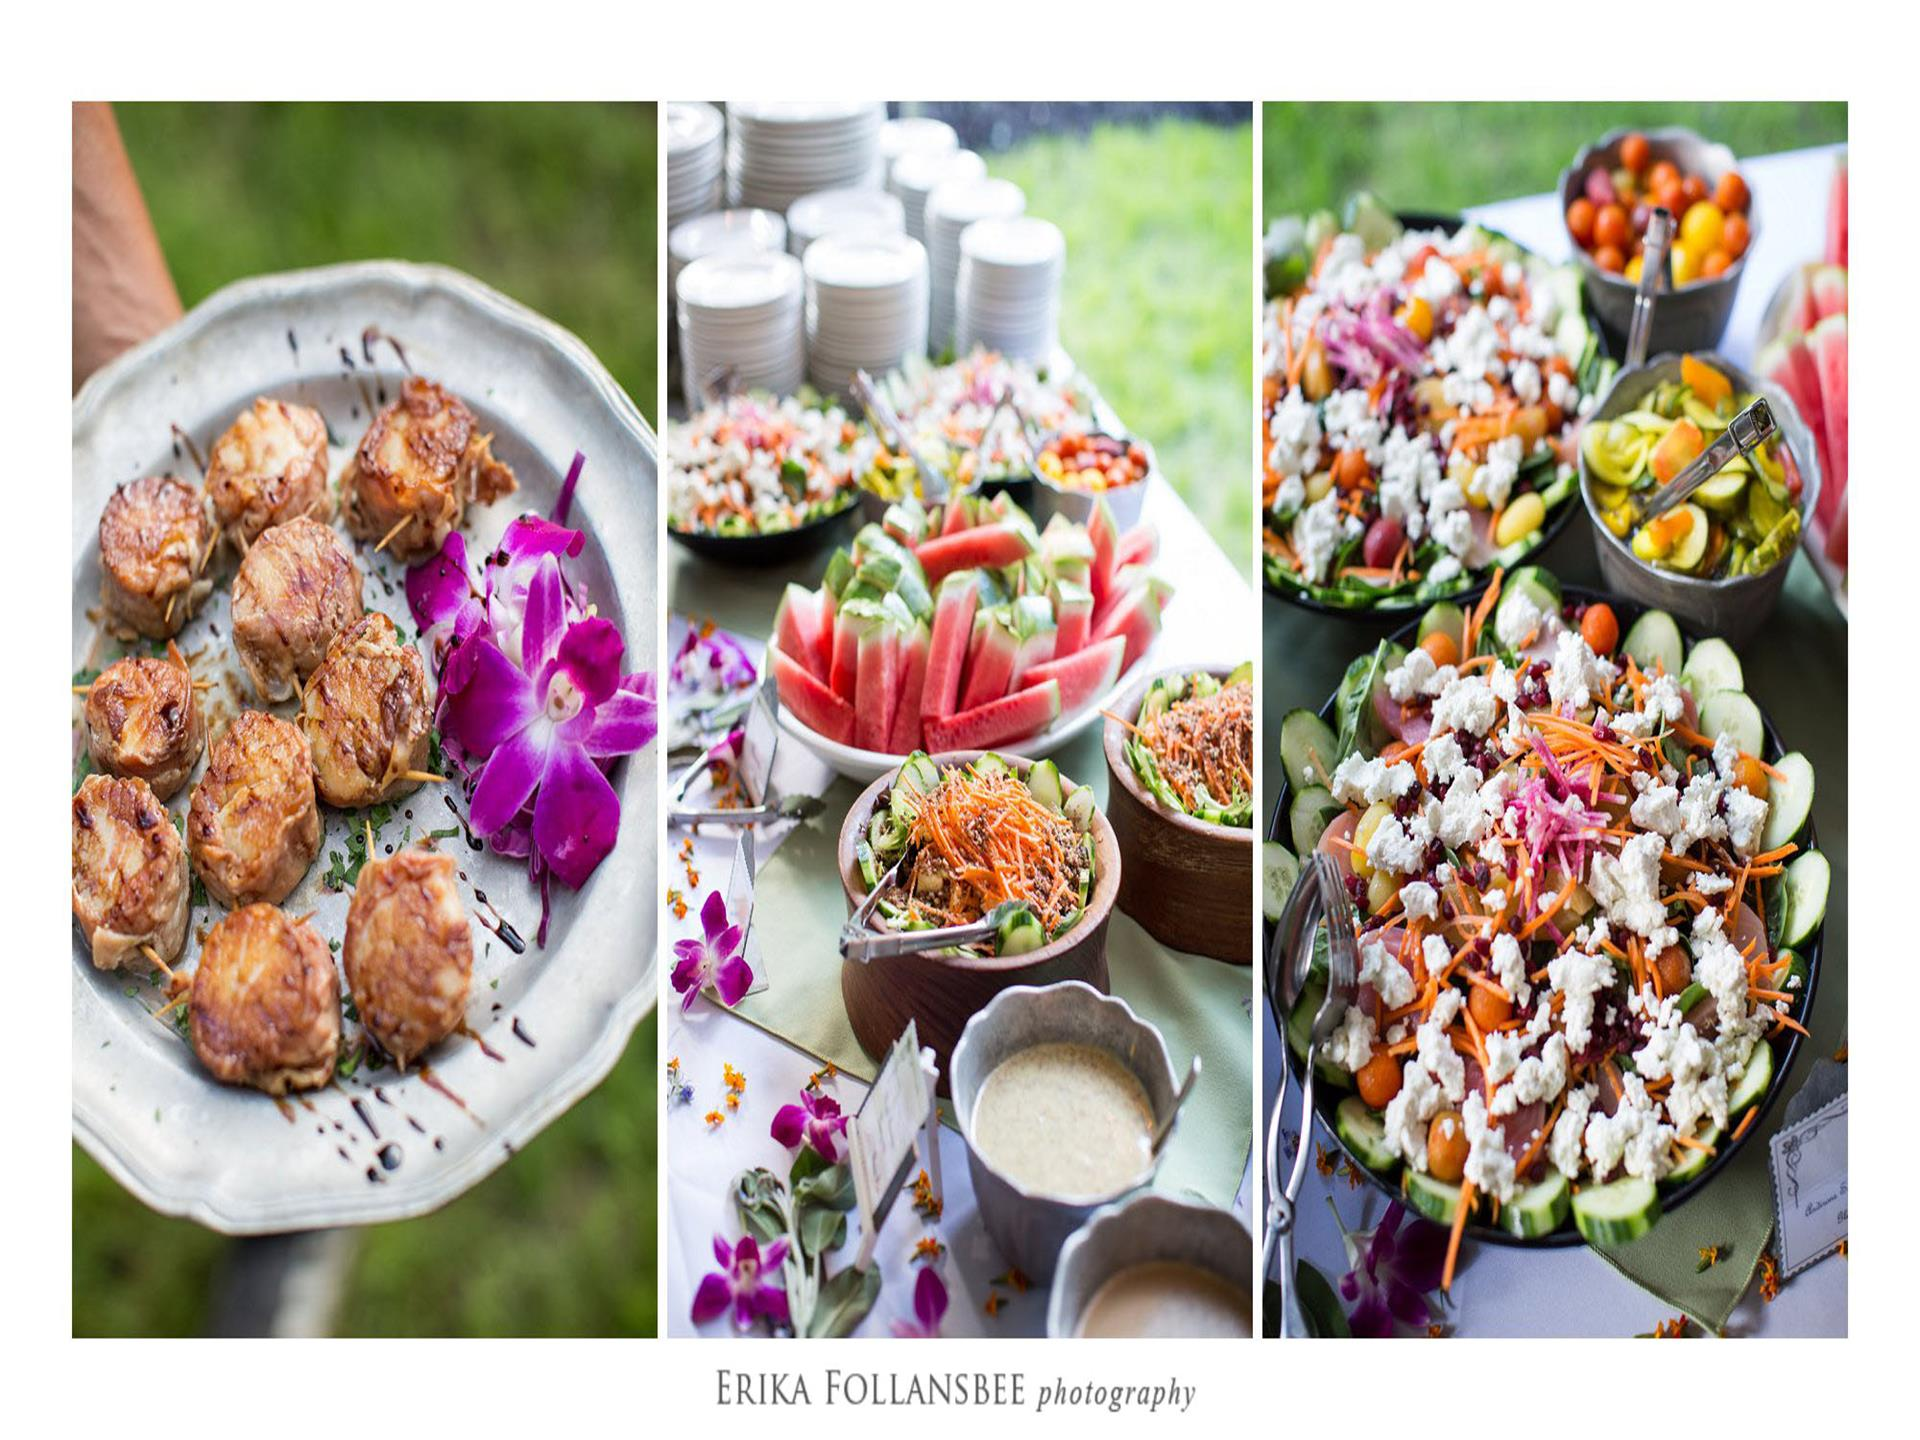 three photos of different catering dishes: a plate of scallops, a table of fruits and salads ,and a closeup of a salad with feta cheese, cucumbers, and carrots